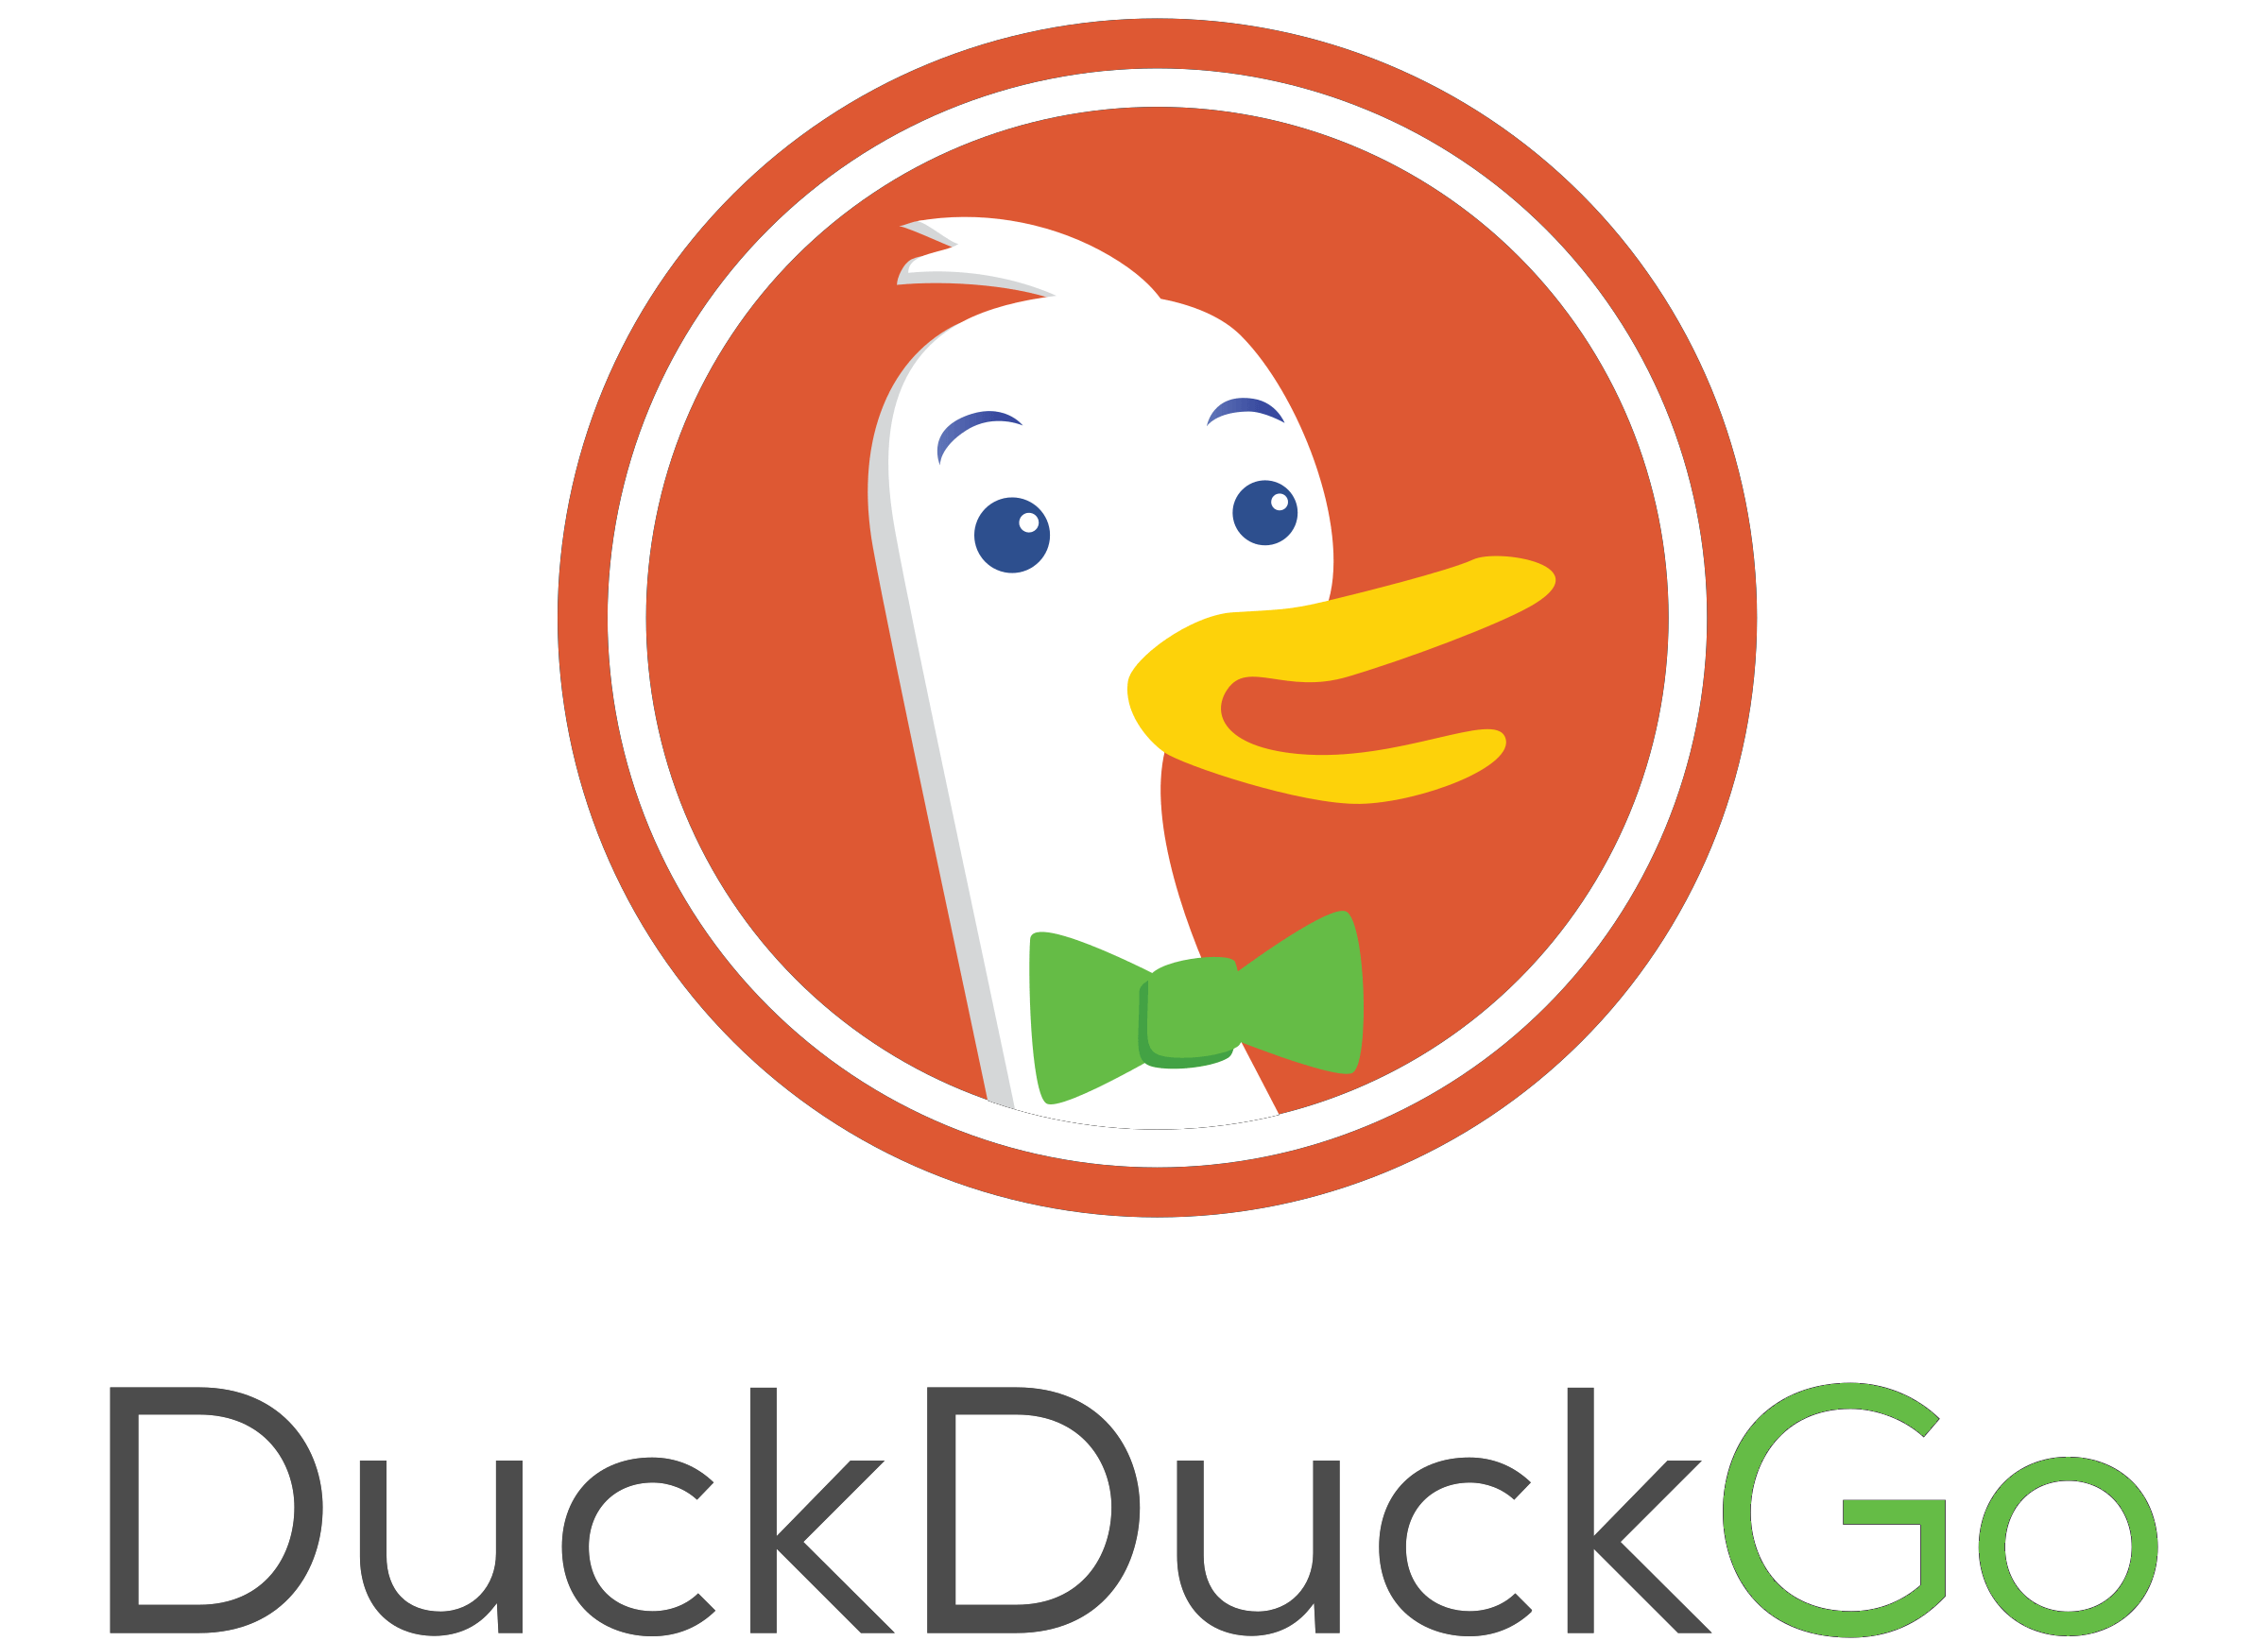 duckduckgo - DuckDuckGo Why now 100 million search queries?